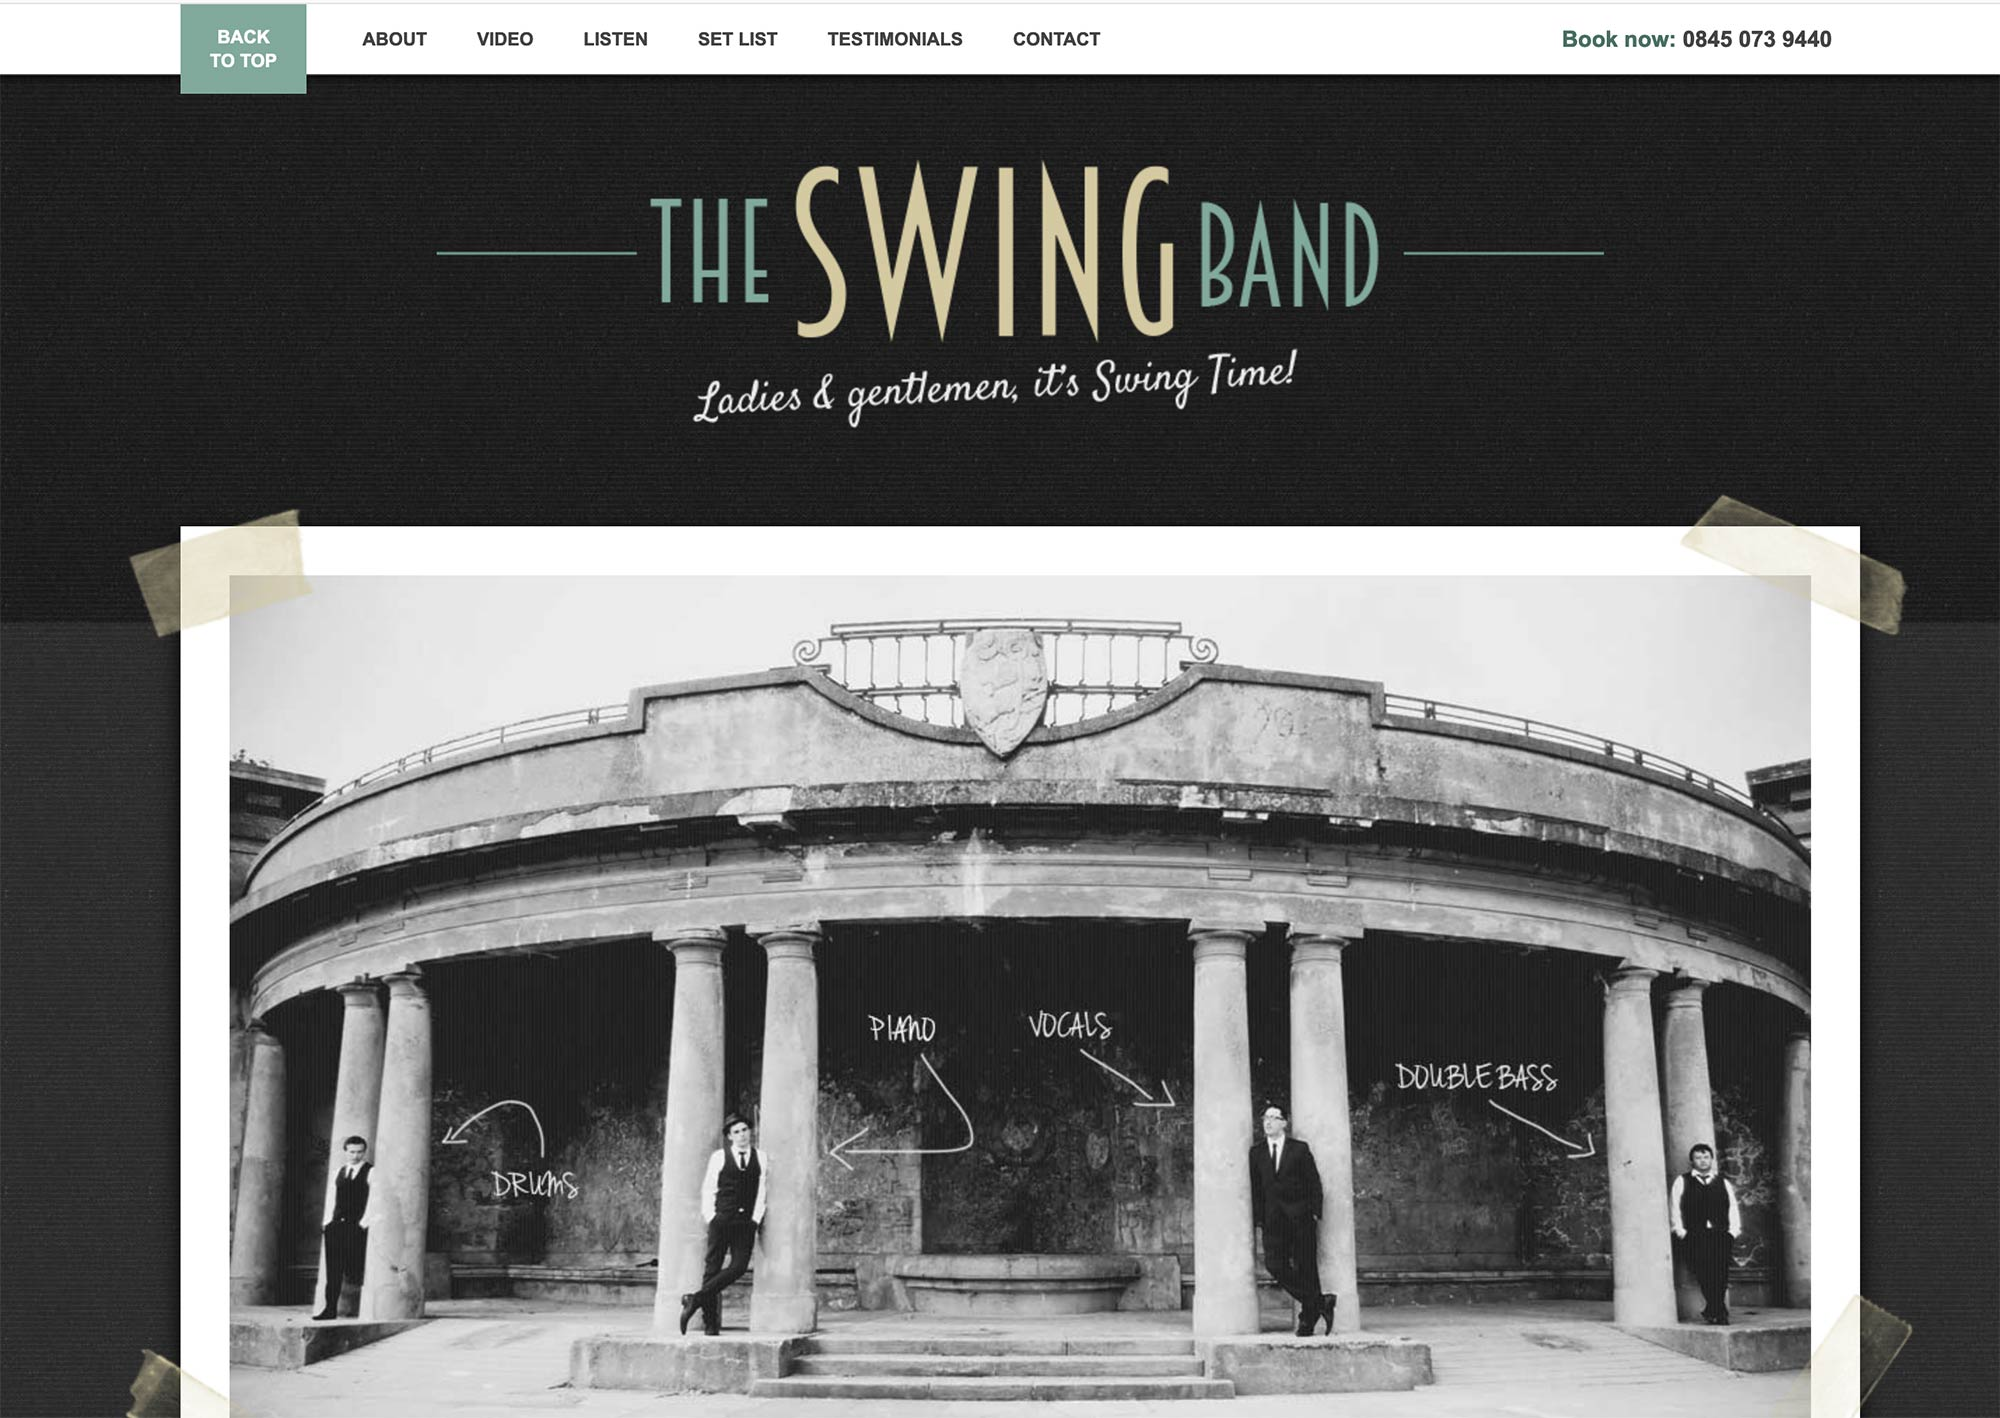 The Swing Band